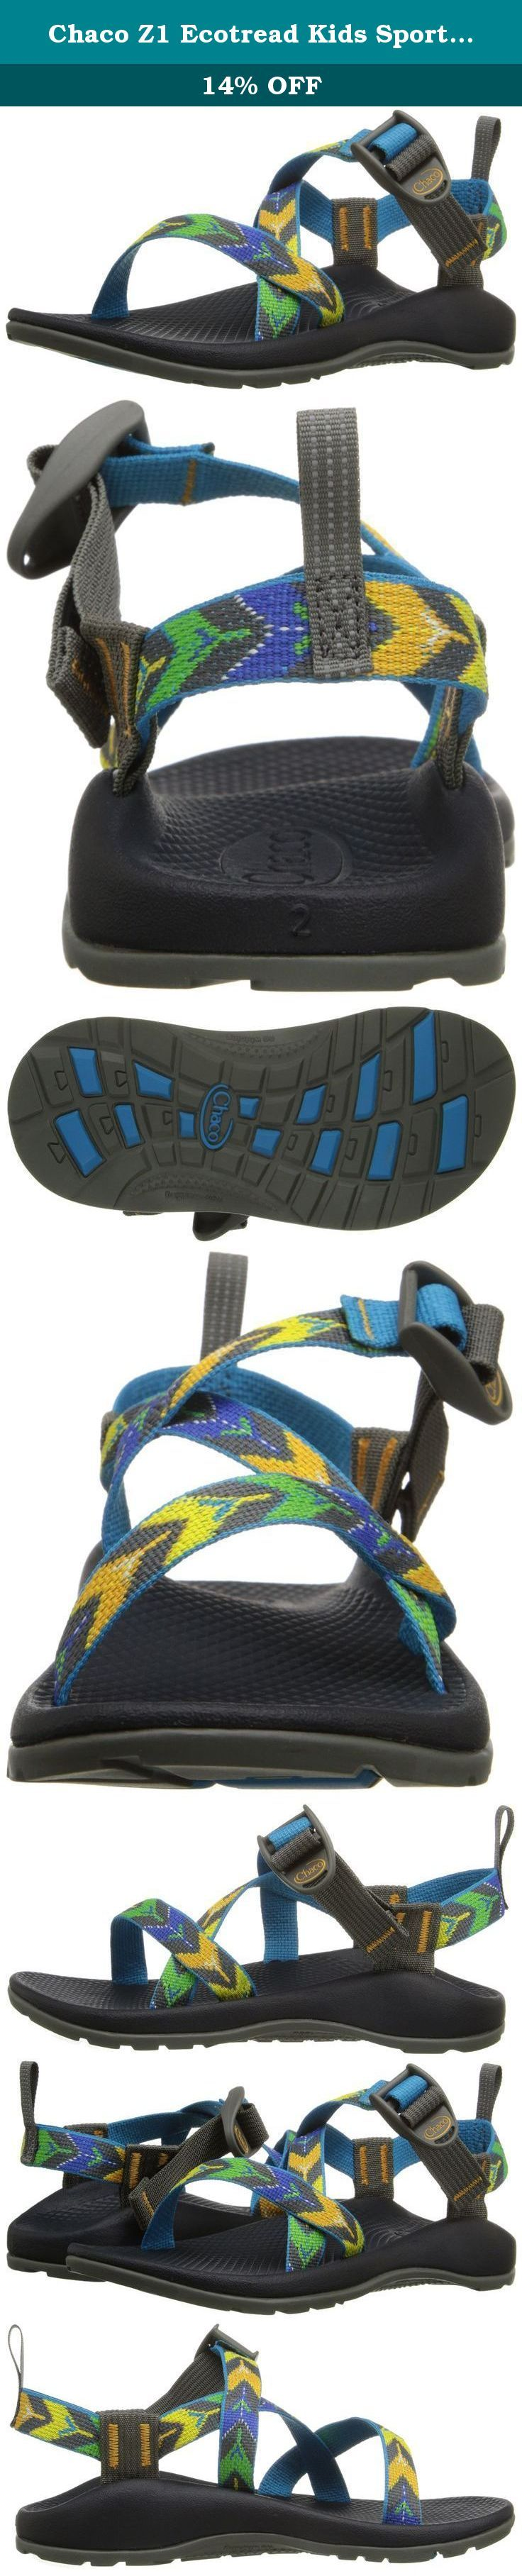 Chaco Z1 Ecotread Kids Sport Sandal (Toddler/Little Kid/Big Kid), Arrows Slate, 5 M US Big Kid. polyester jacquard webbing upper wraps aroudn the foot and through the idsole for a customized fit. Adjustable and durable high tensile webbing heel risers. Injection-molded ladder lock buckle. Durable LUVSEAT PU midsole. Slip restant classic diamond pattern design footbed. Kids Classic outsole. Non-marking EcoTRead 25% recycled rubber content. 2mm lug depth.